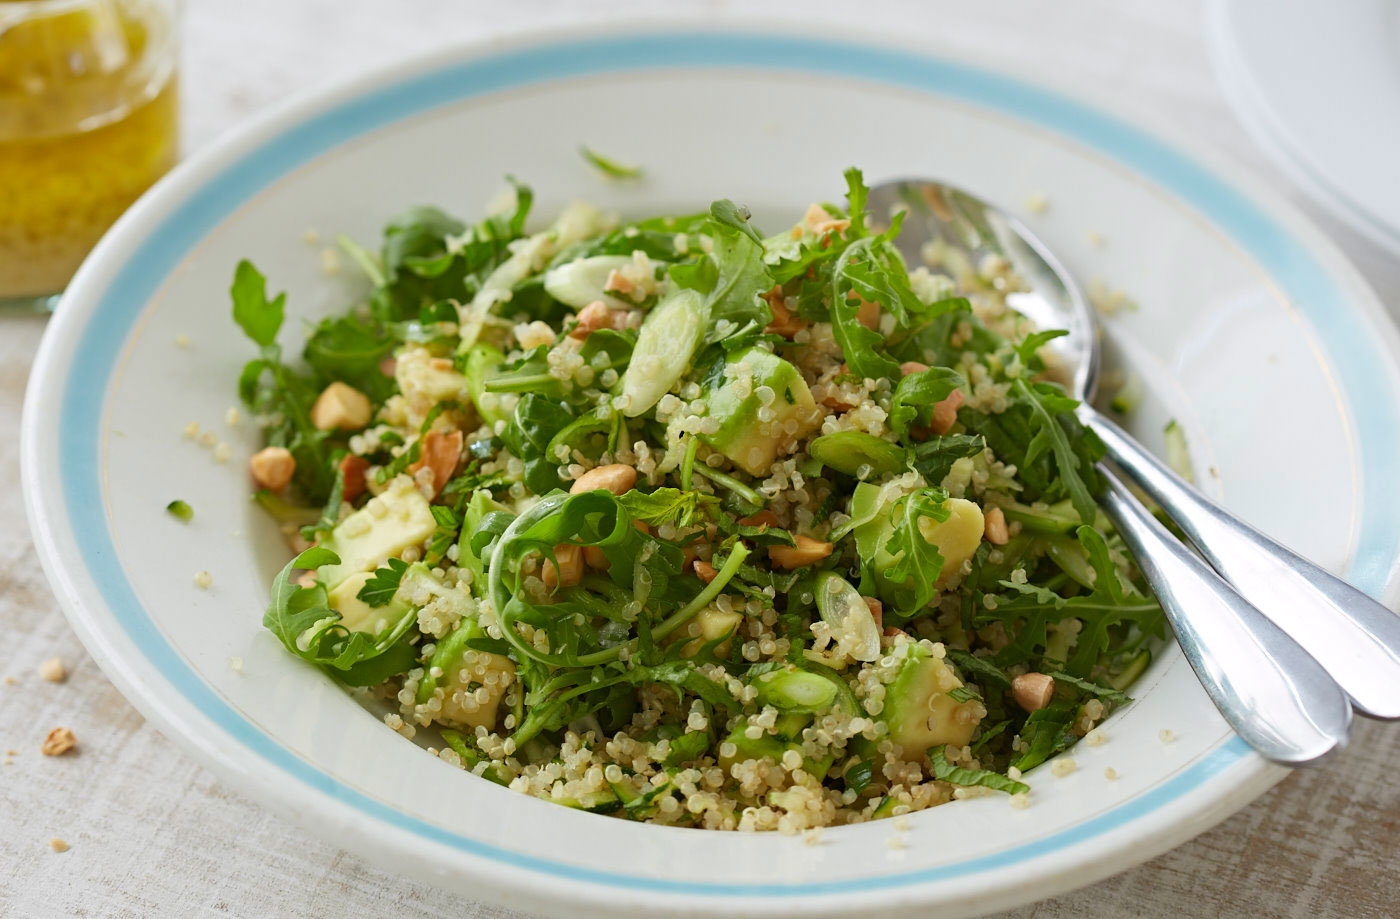 Quinoa, avocado and almond salad recipe